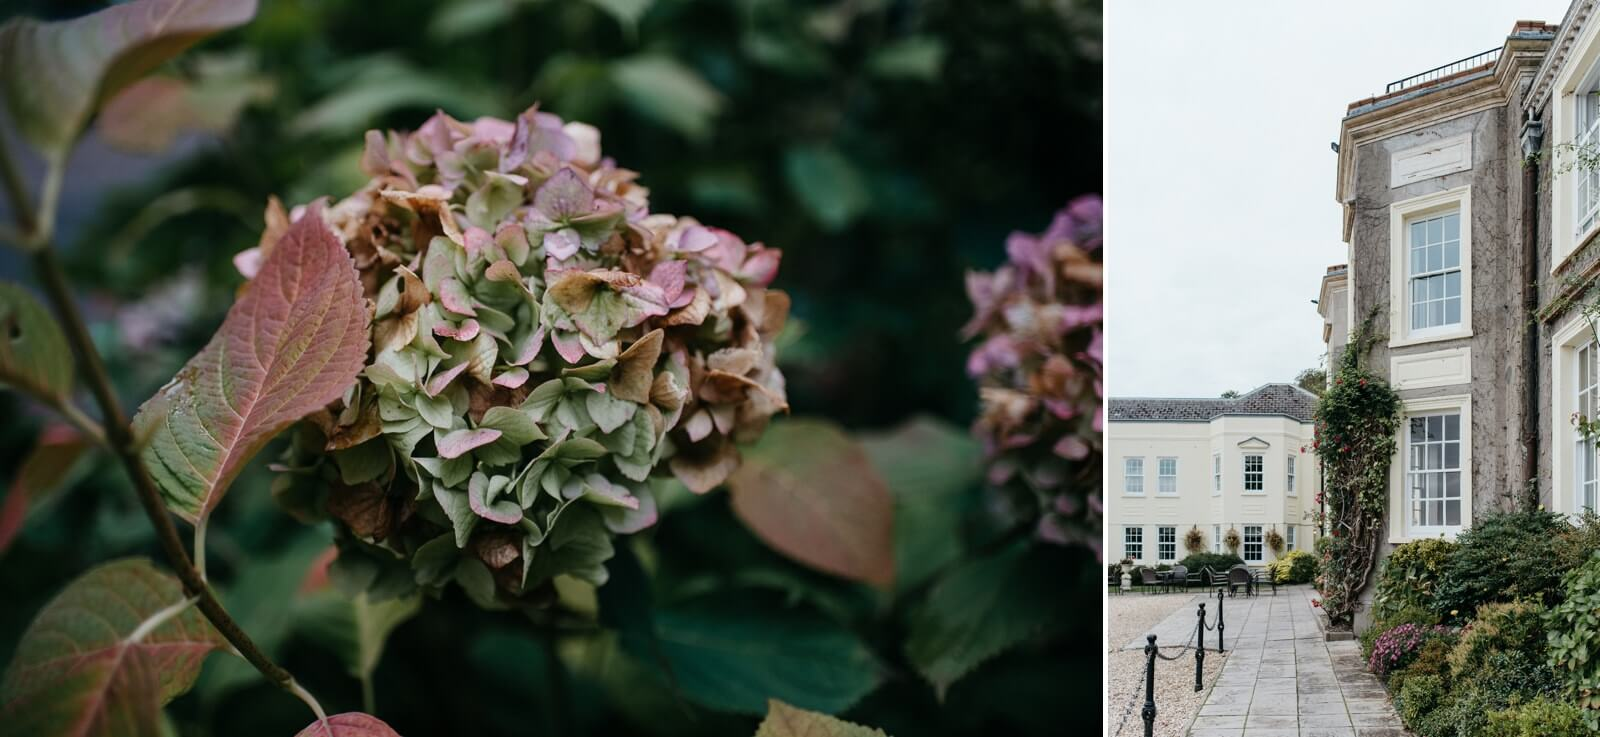 Autumn hydrangeas at New House Hotel, Cardiff